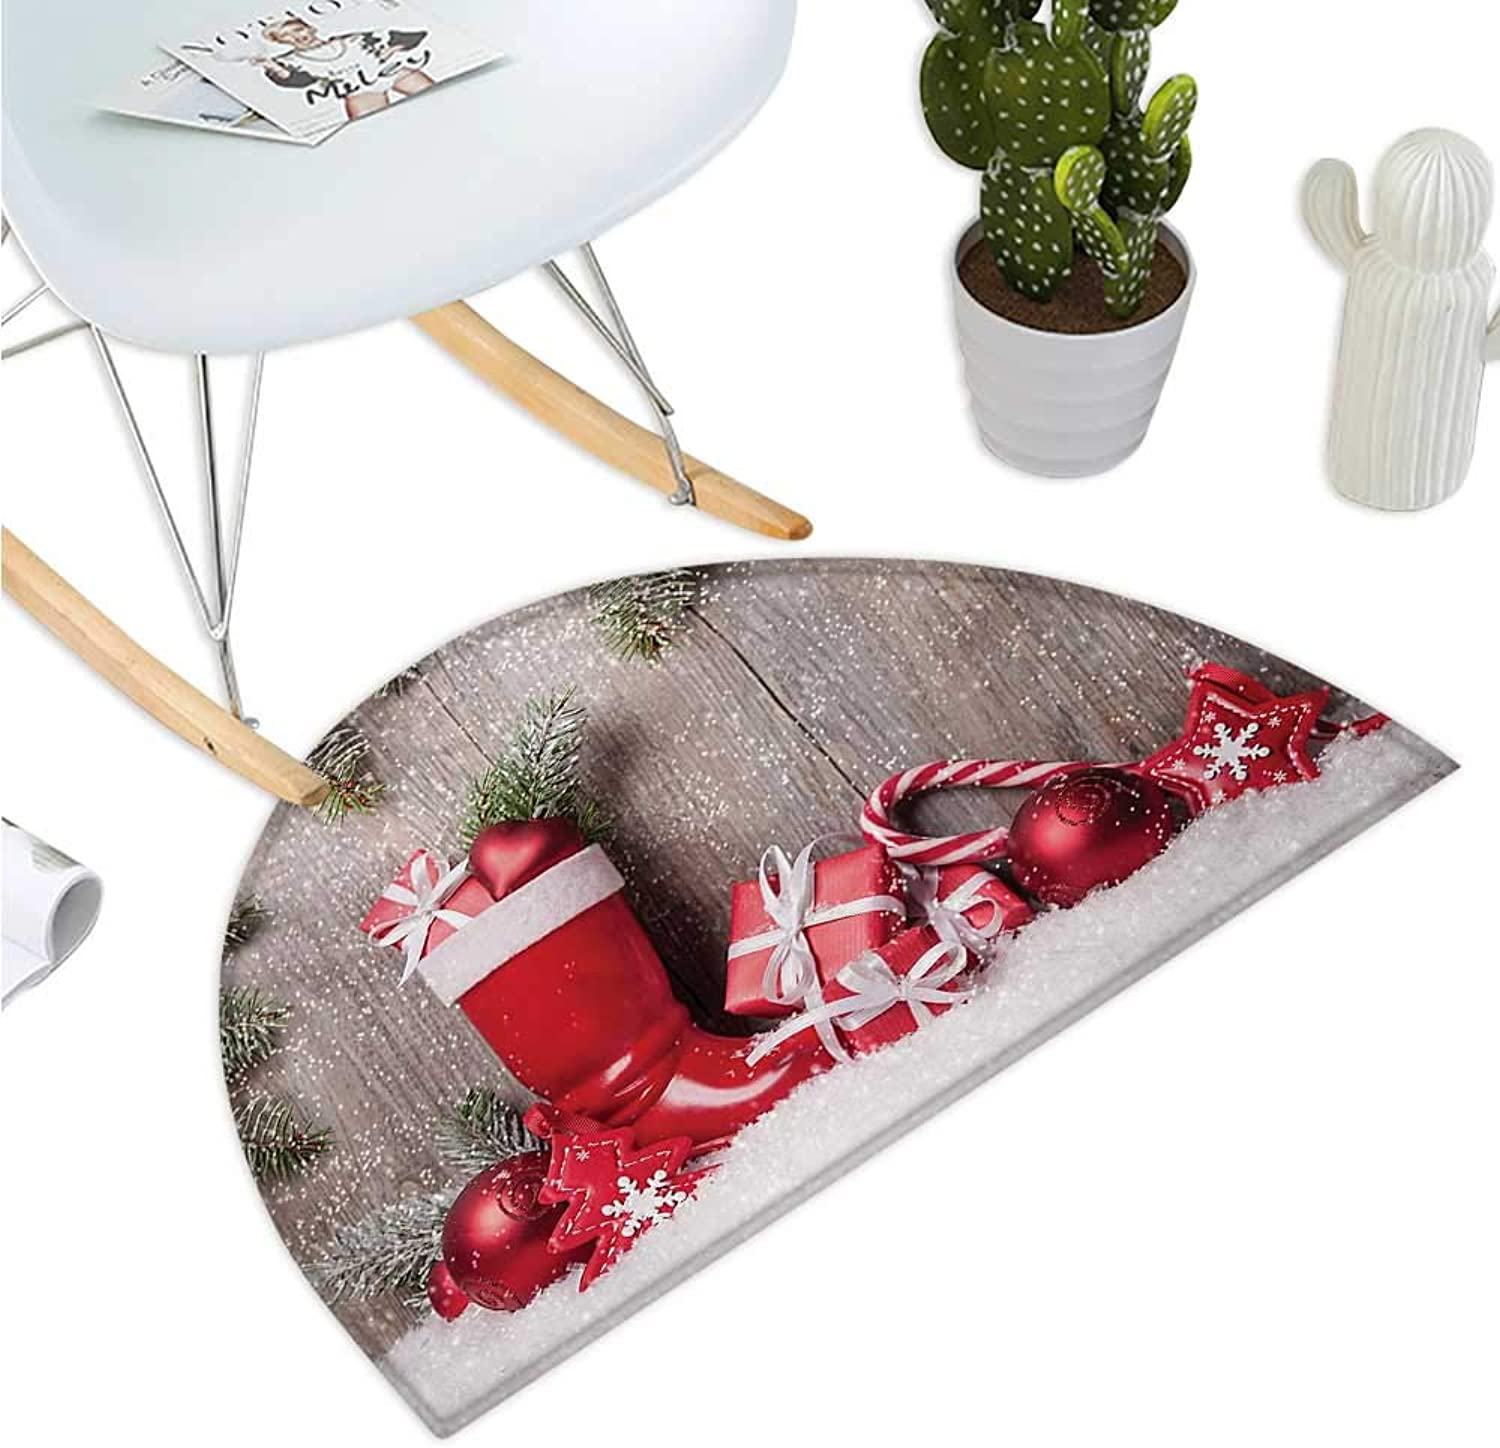 Christmas Semicircle Doormat Xmas Background with Gift Boxes on Wooden Board Countryside Celebration Image Halfmoon doormats H 39.3  xD 59  Brown Red